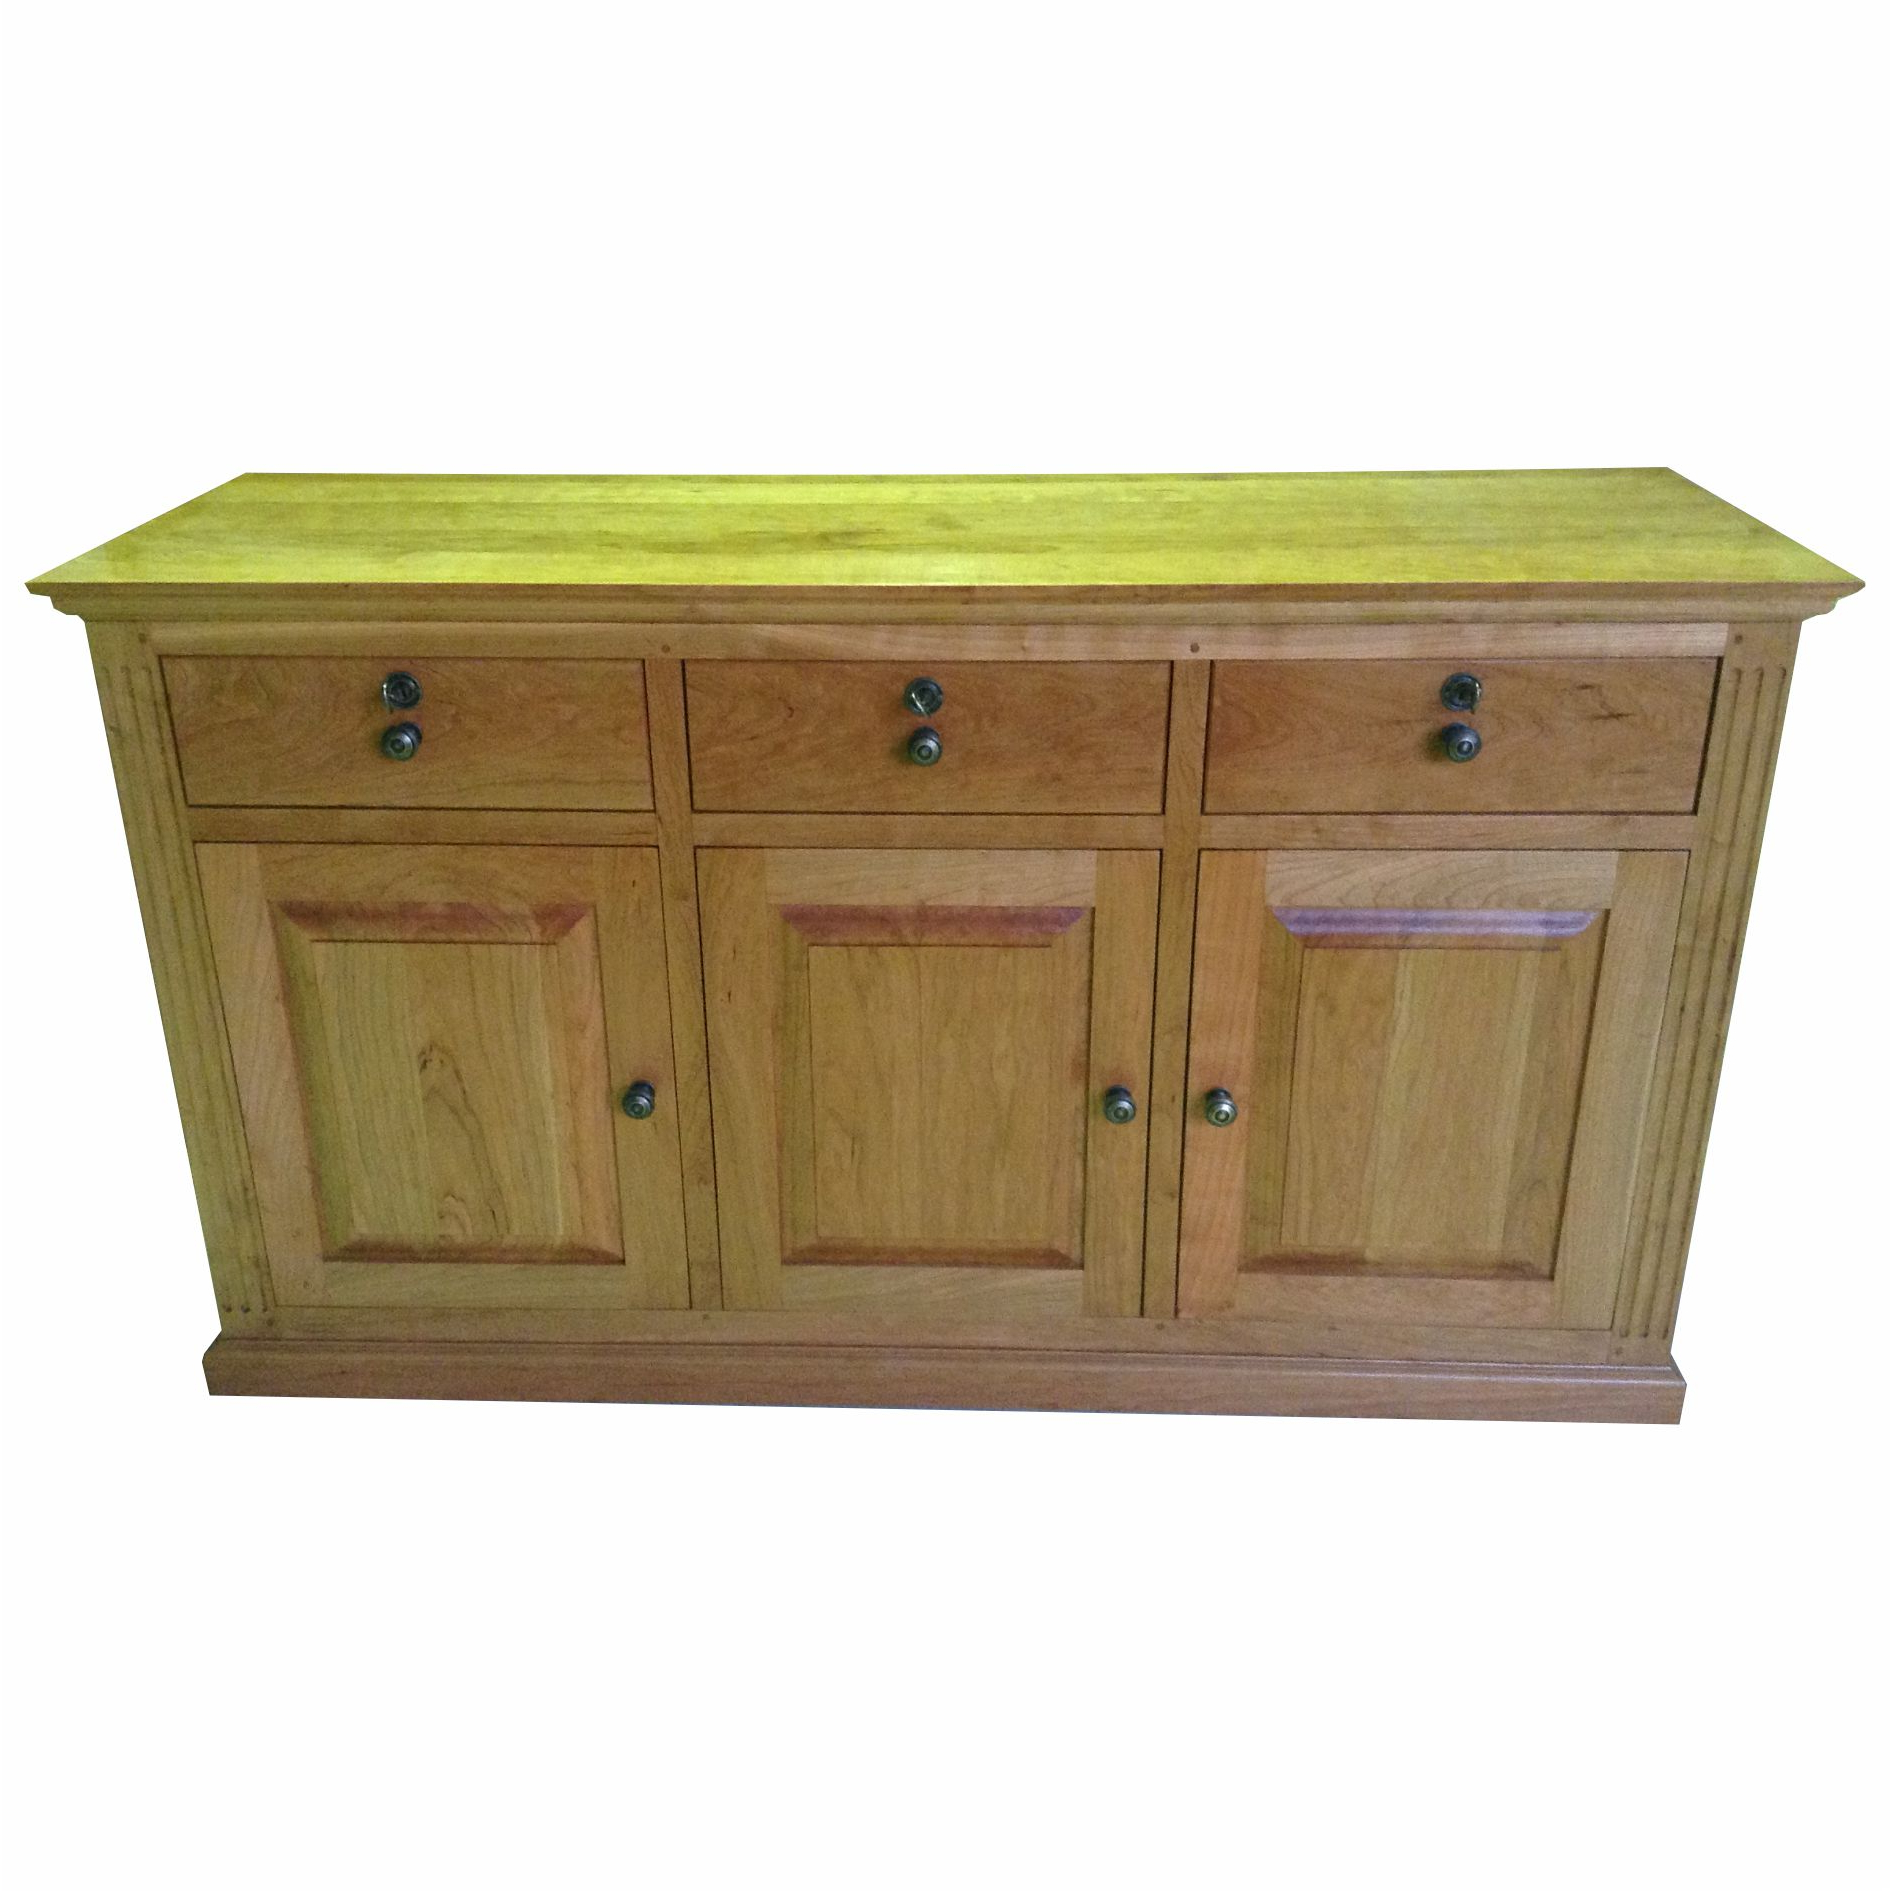 Widely Used Stella Sideboards Regarding Classic Sideboards & Server (5 Sizes) (View 20 of 20)